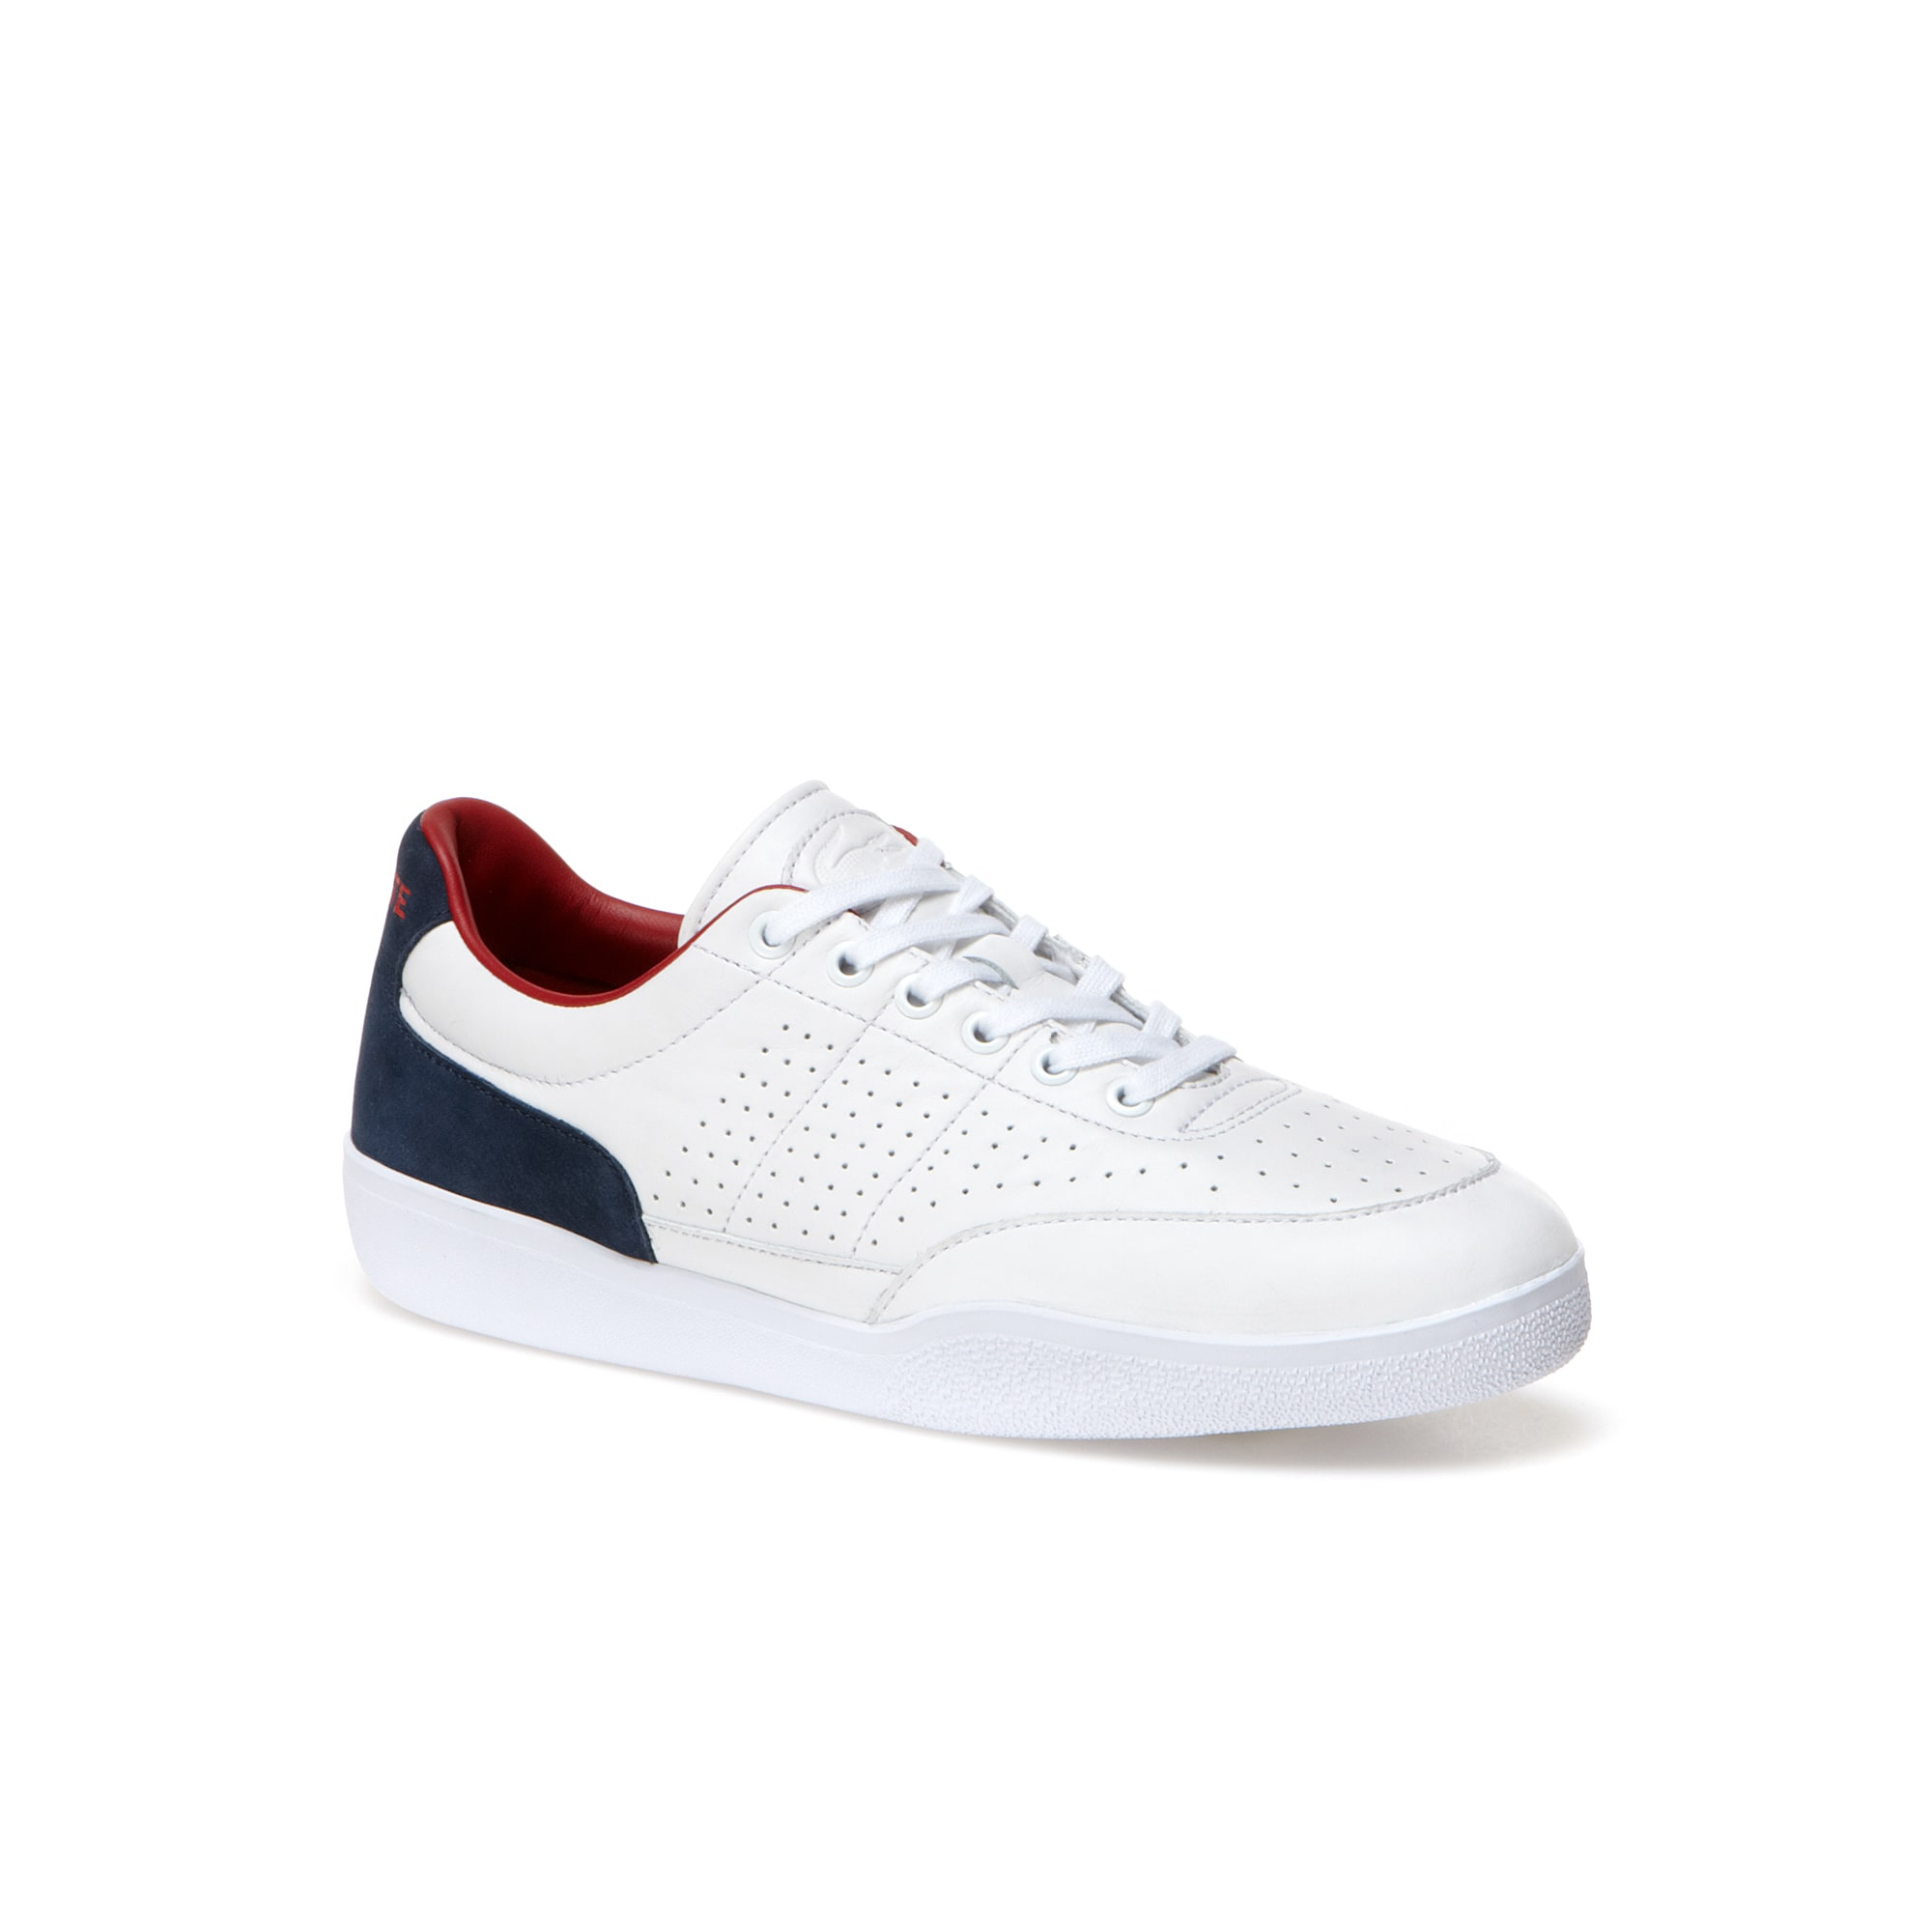 Men's Dash Punched Leather Sneakers